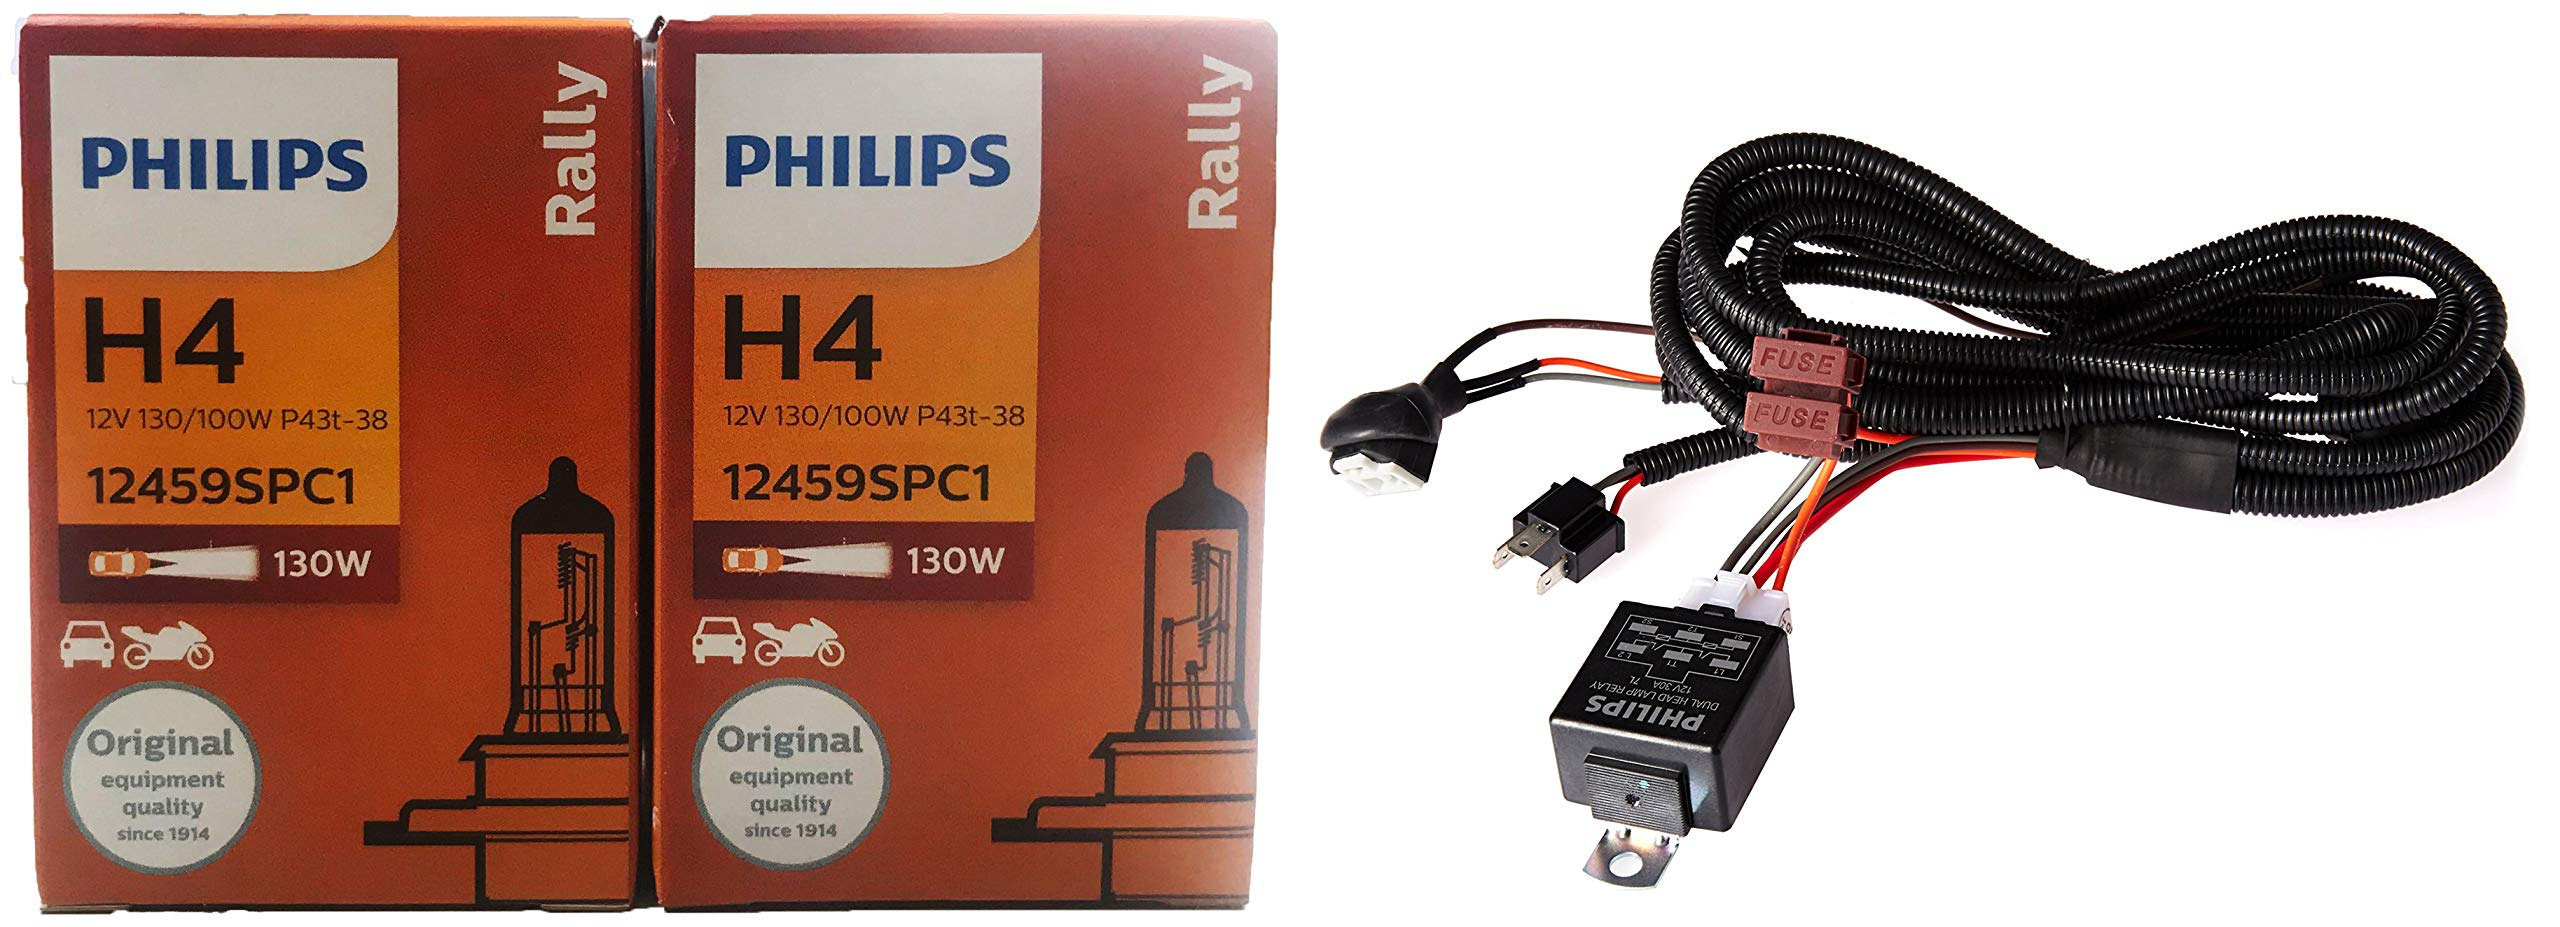 Philips Rally H4 Headlight Bulb (130/100W, 2 Bulbs) and Philips 12003XM H4 Heavy Duty Relay Wiring Kit for High Power (100/90W or 130/100W) product image